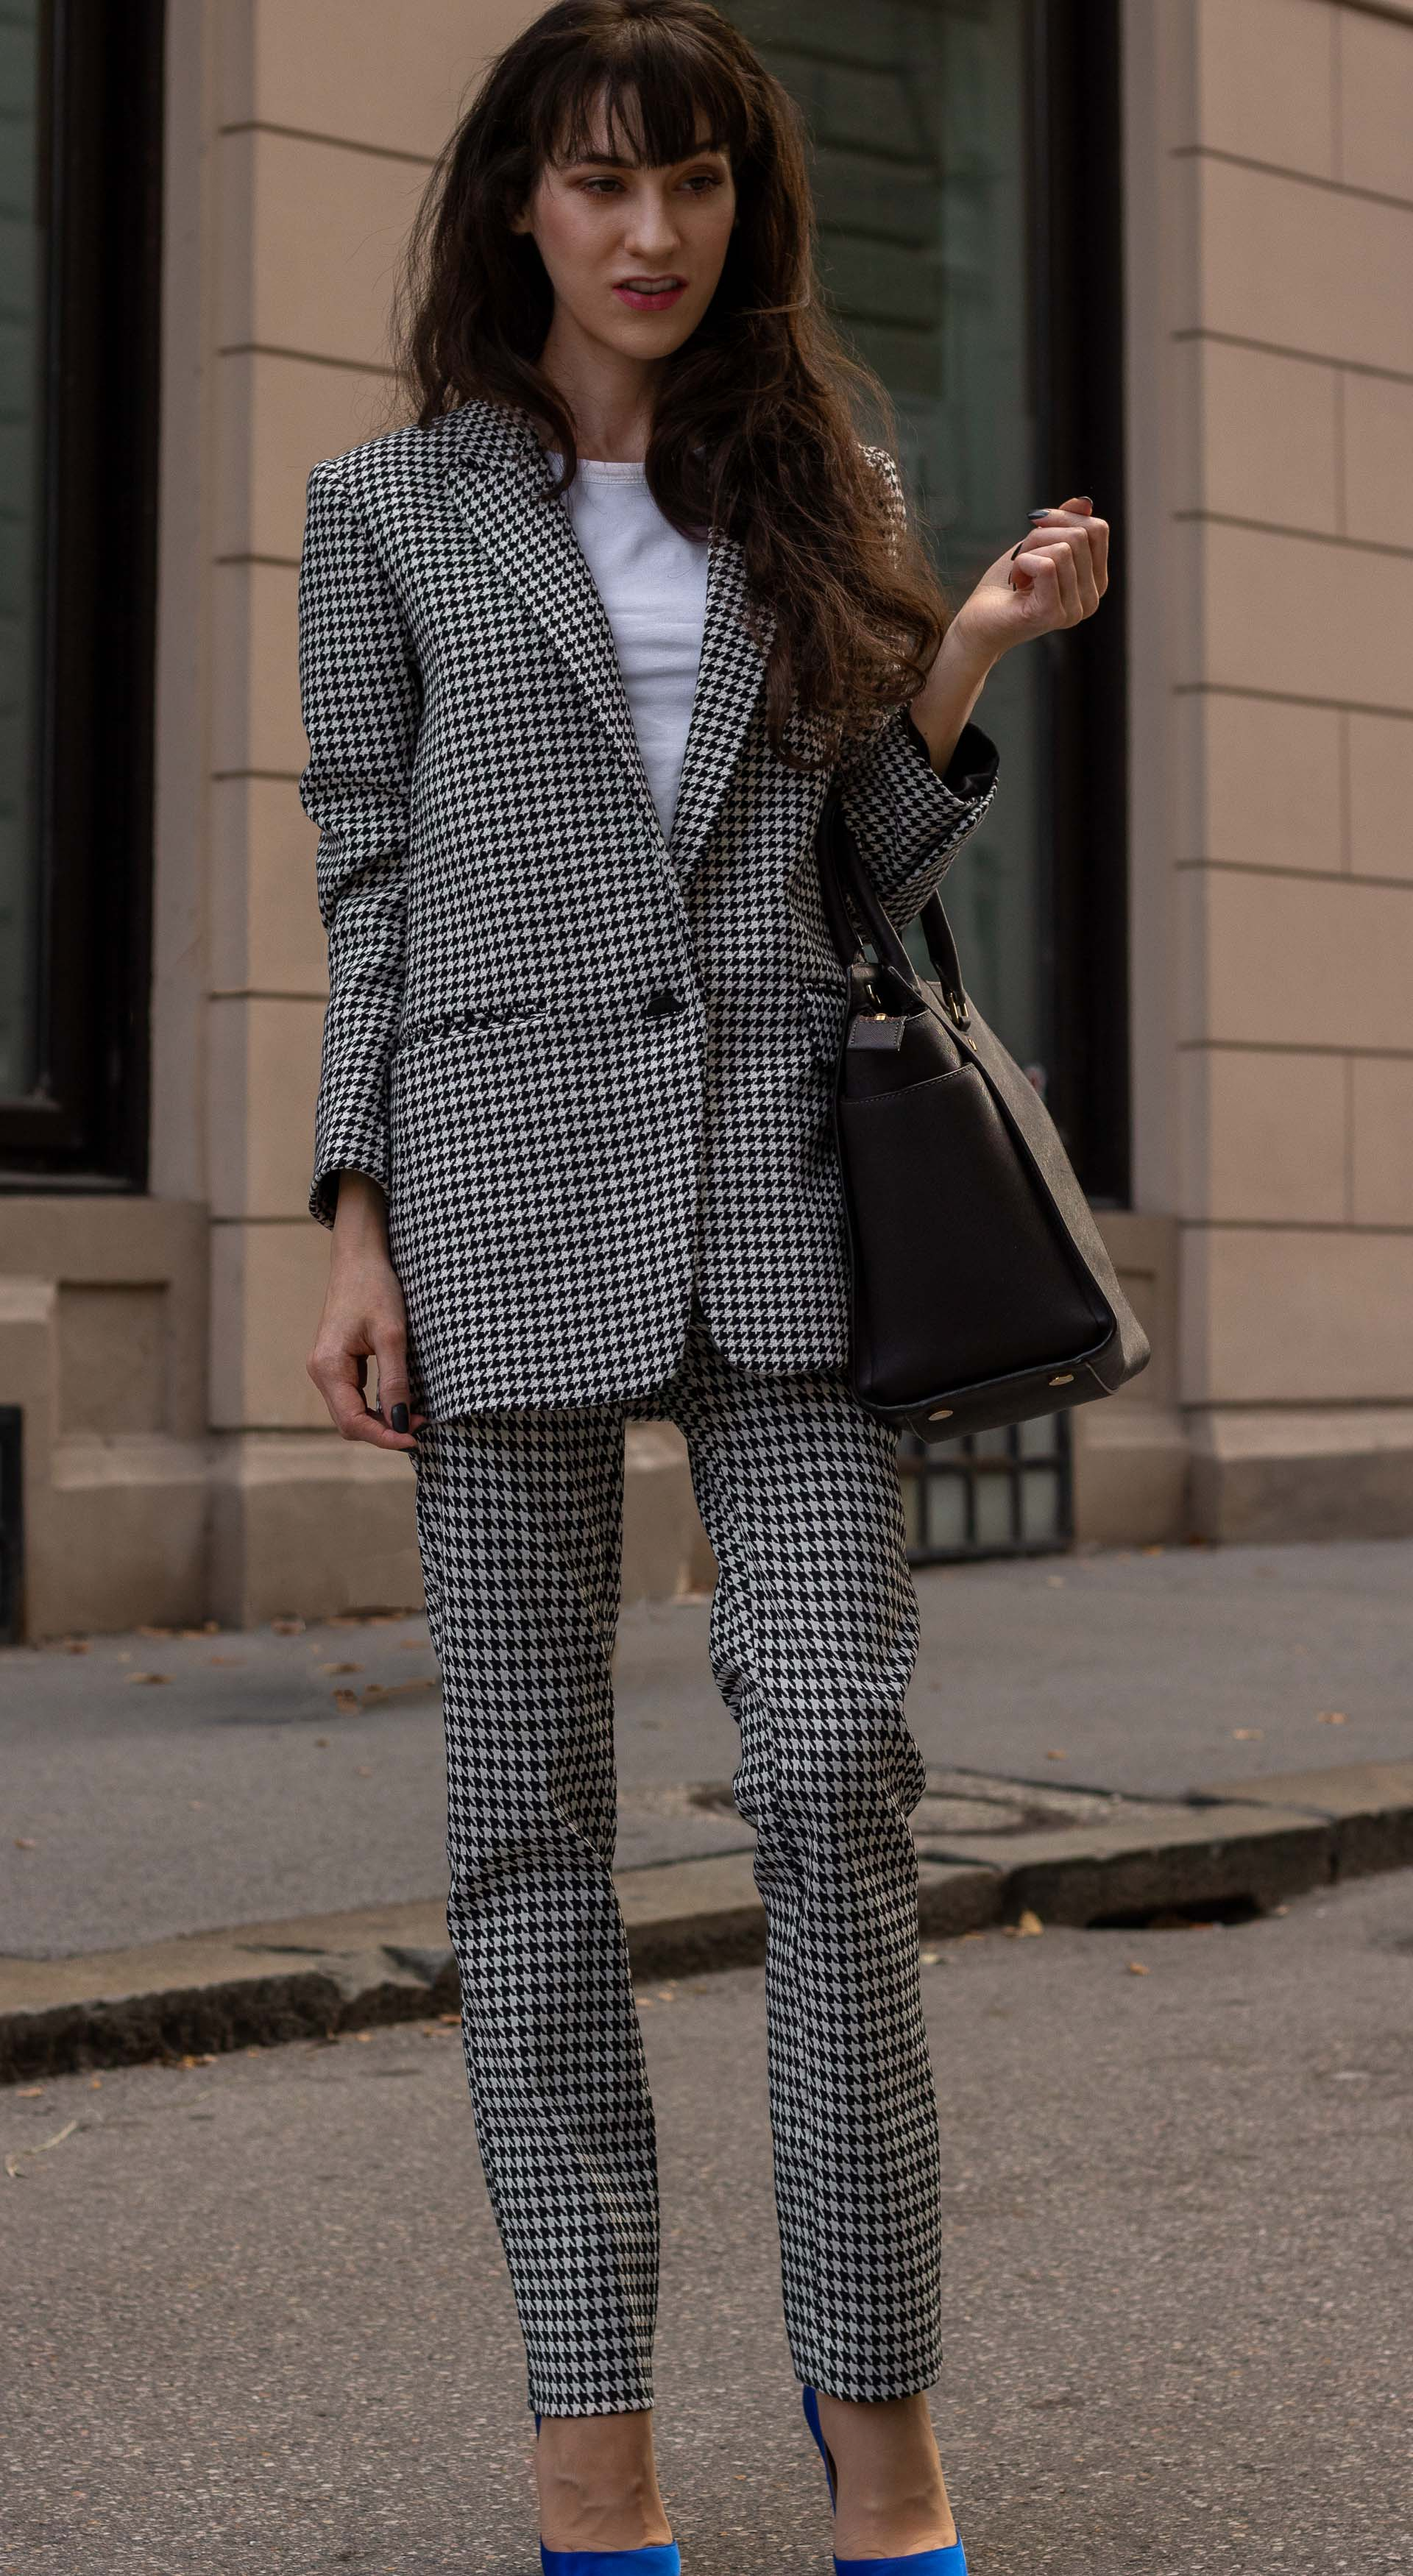 Fashion blogger Veronika Lipar of Brunette from Wall Street wearing white Sandro houndstooth tailored blazer European Culture houndstooth pants Michael Kors Selma bag blue Gianvito Rossi court shoes for work in fall